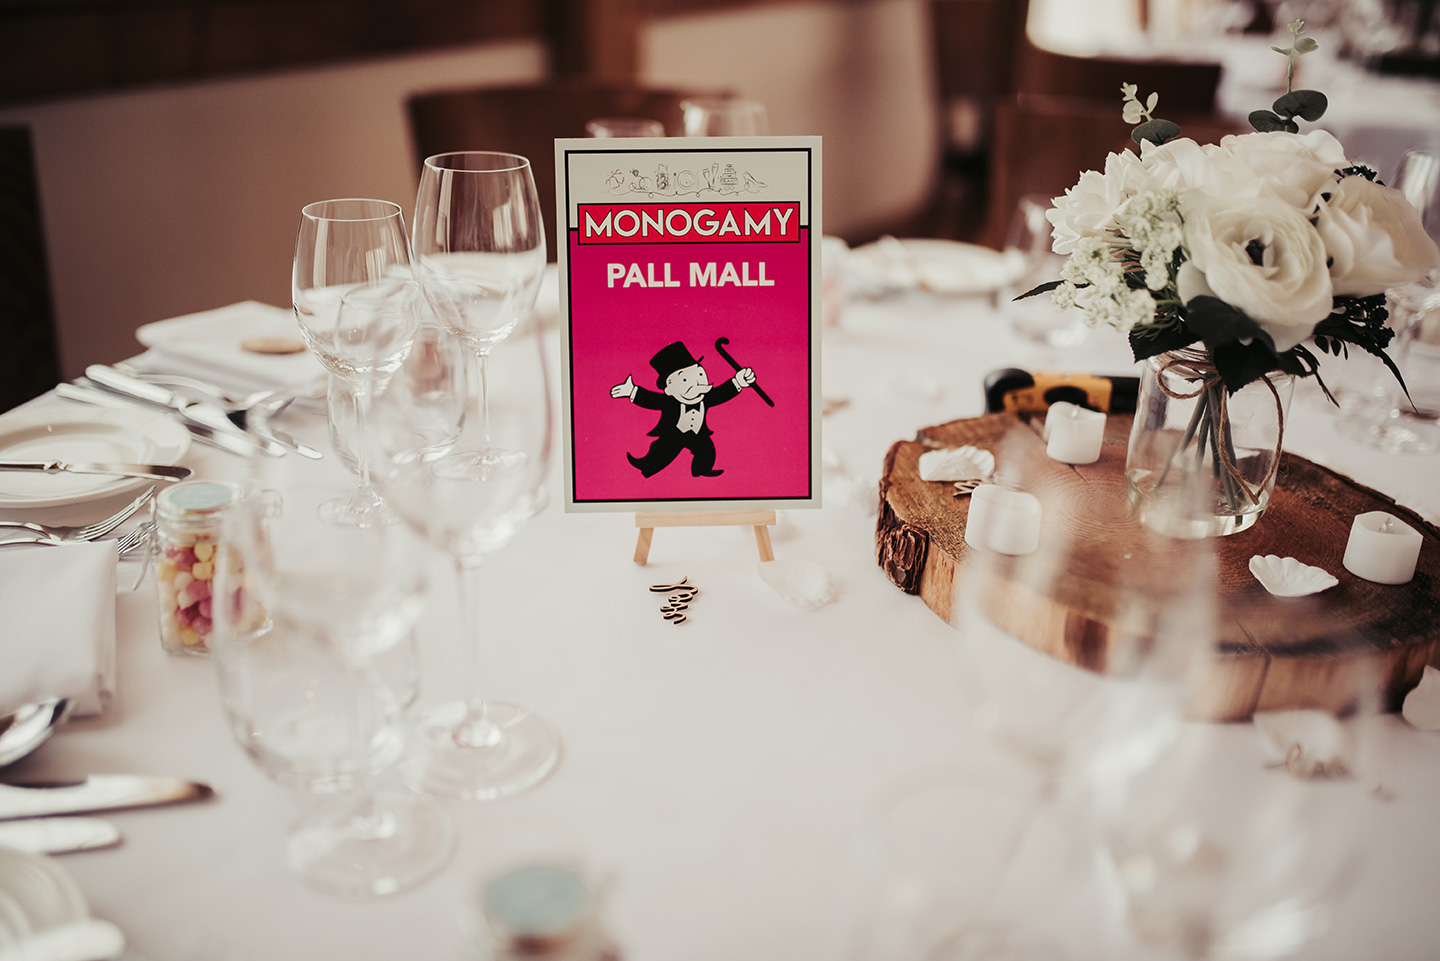 Wedding table names were inspired again by the Monopoly board game